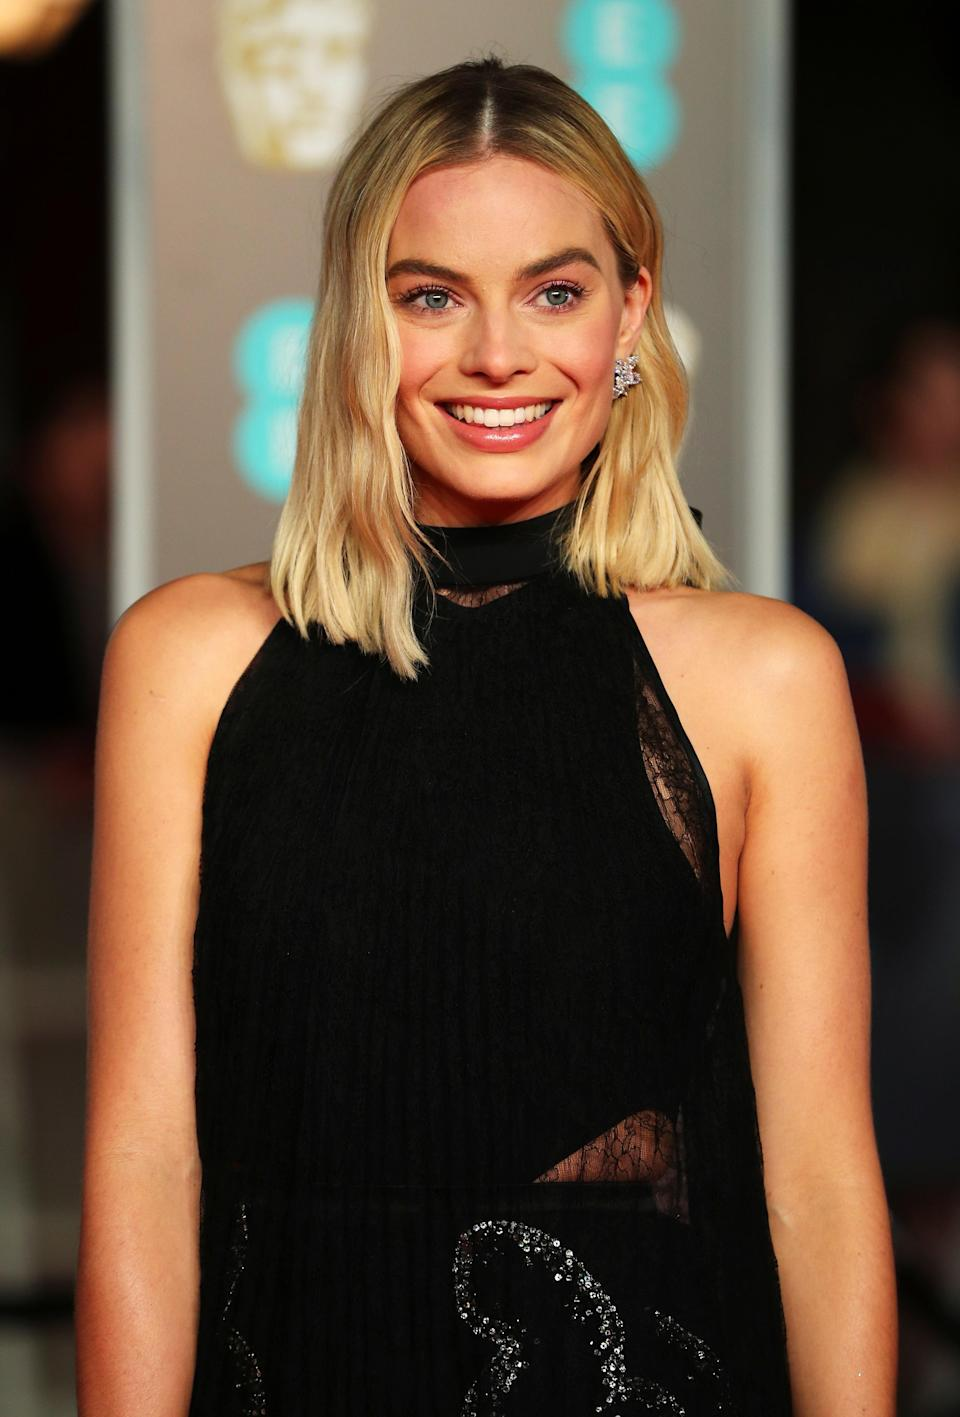 Margot Robbie lights up the night with her smile.